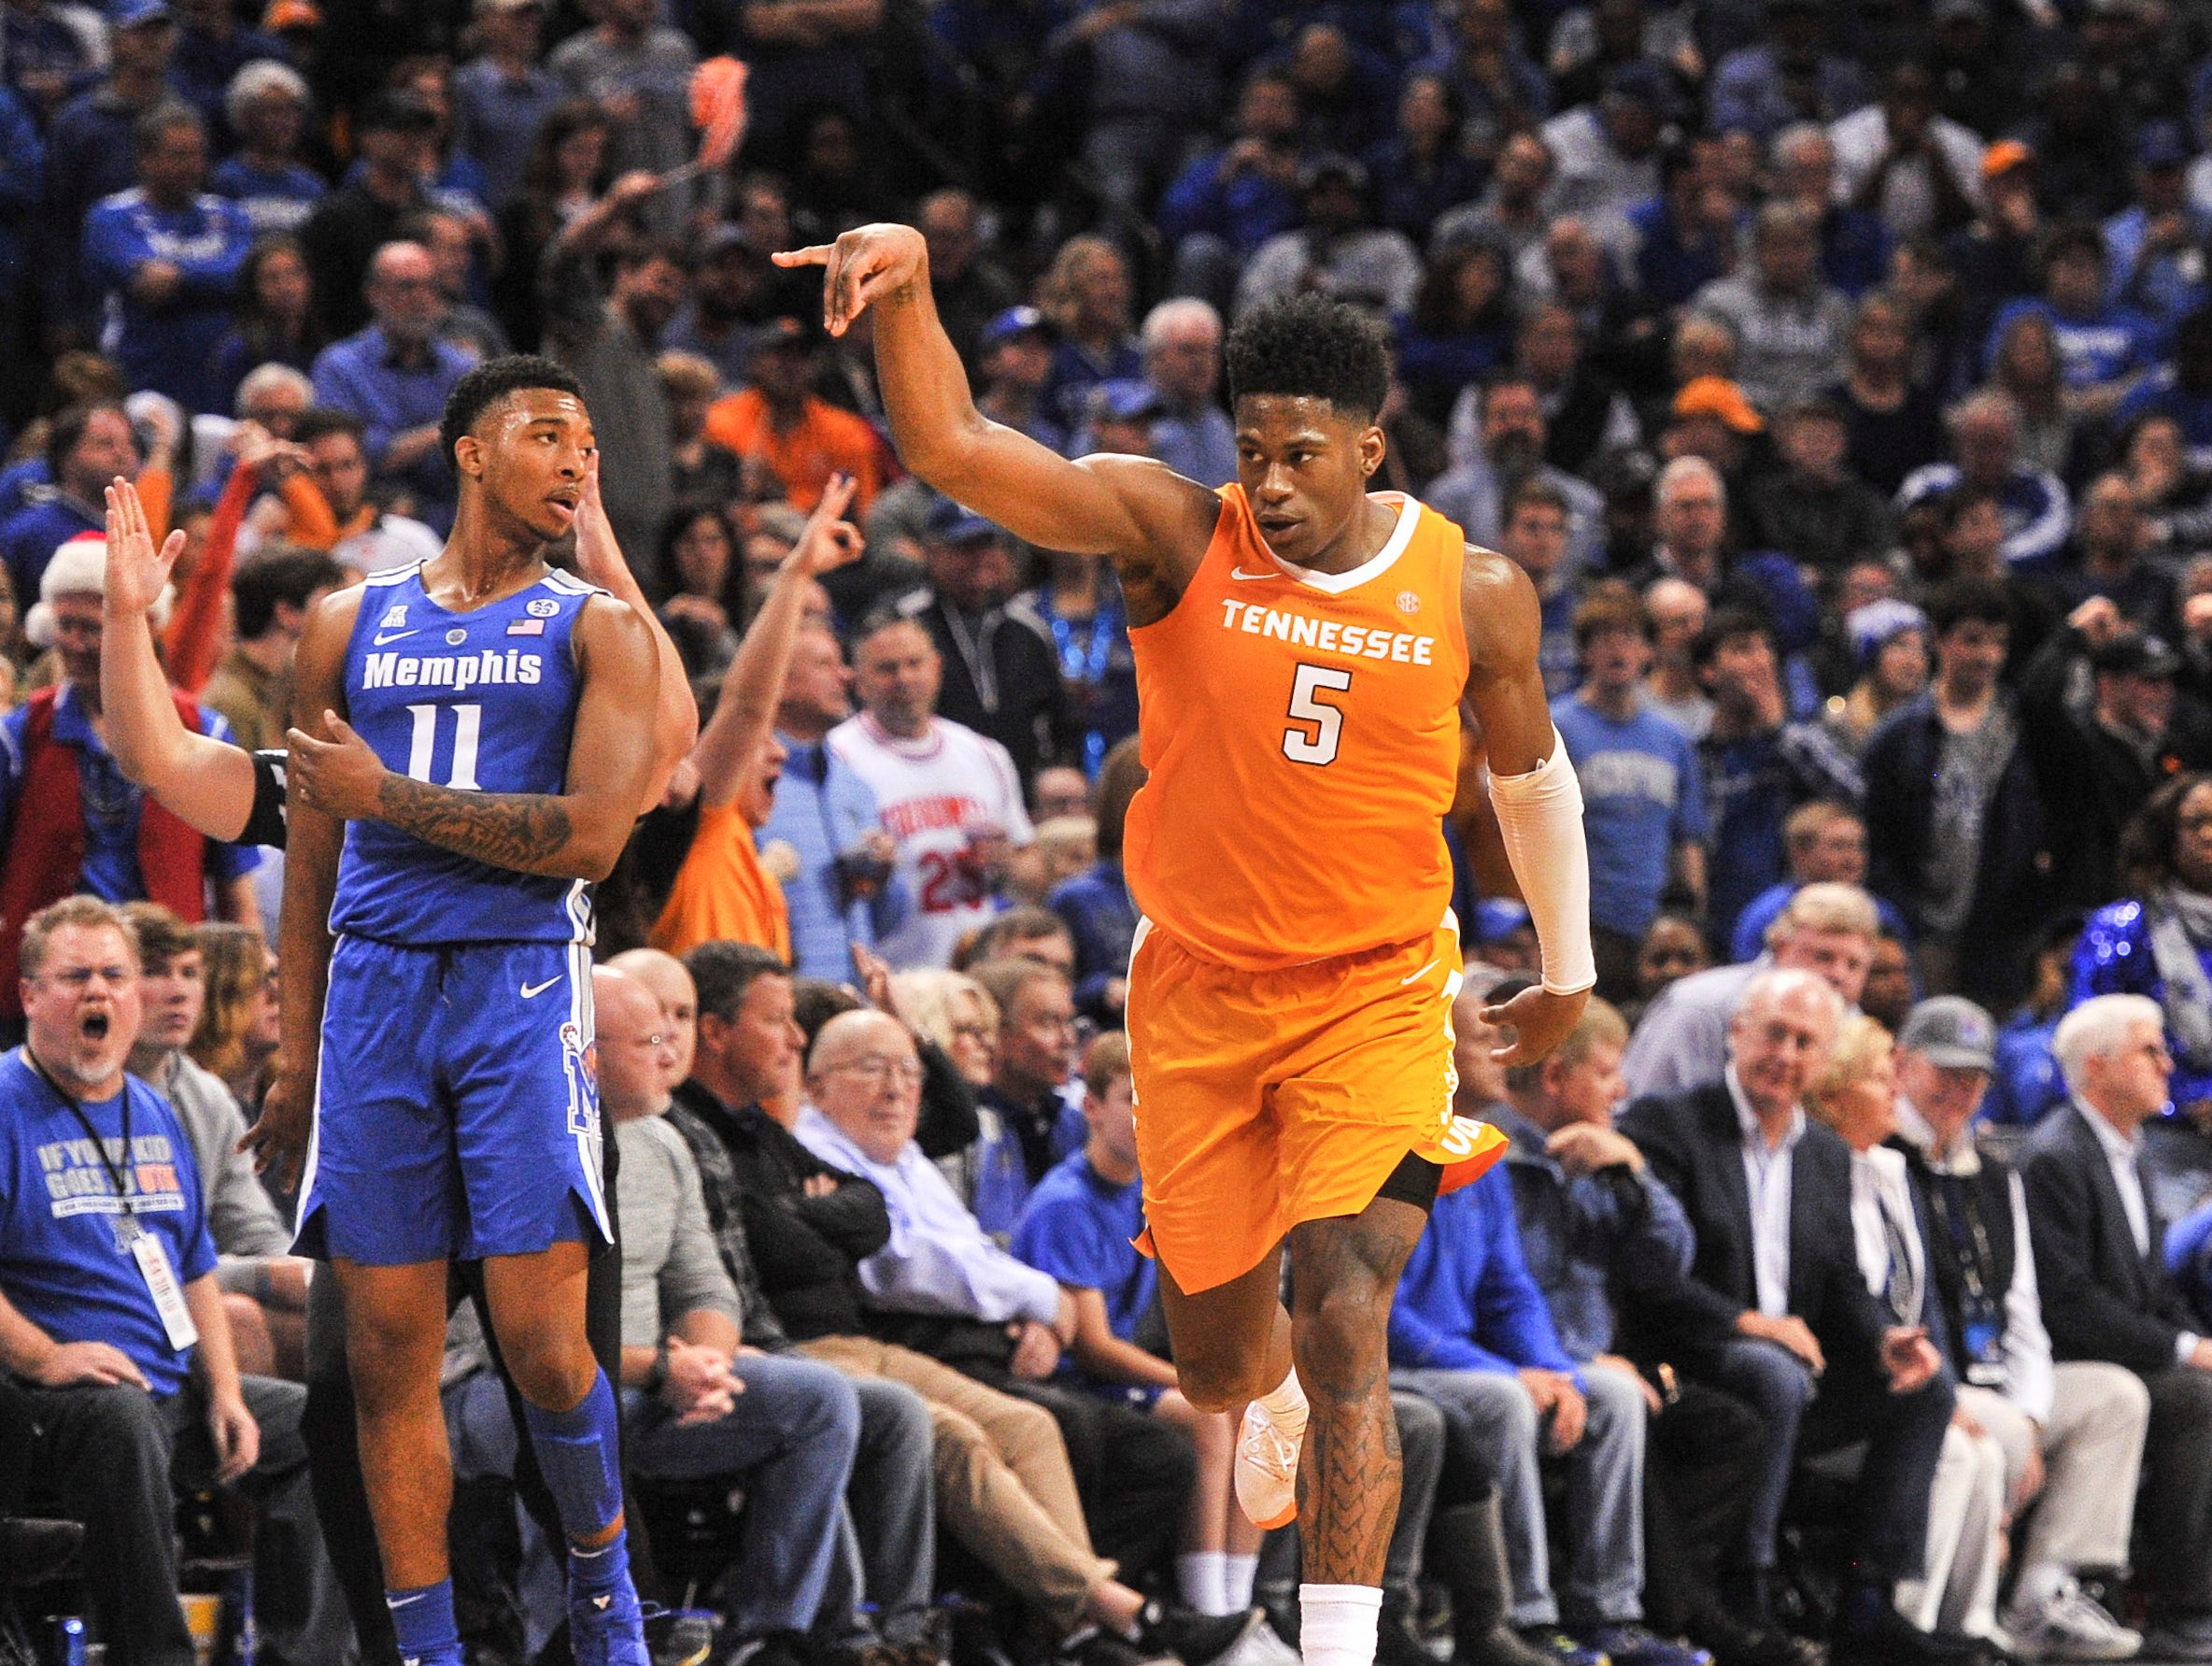 Dec 15, 2018; Memphis, TN, USA; Tennessee Volunteers guard Admiral Schofield (5) reacts after scoring during the second half against Memphis Tigers guard Antwann Jones (11) during the second half at FedExForum. Mandatory Credit: Justin Ford-USA TODAY Sports